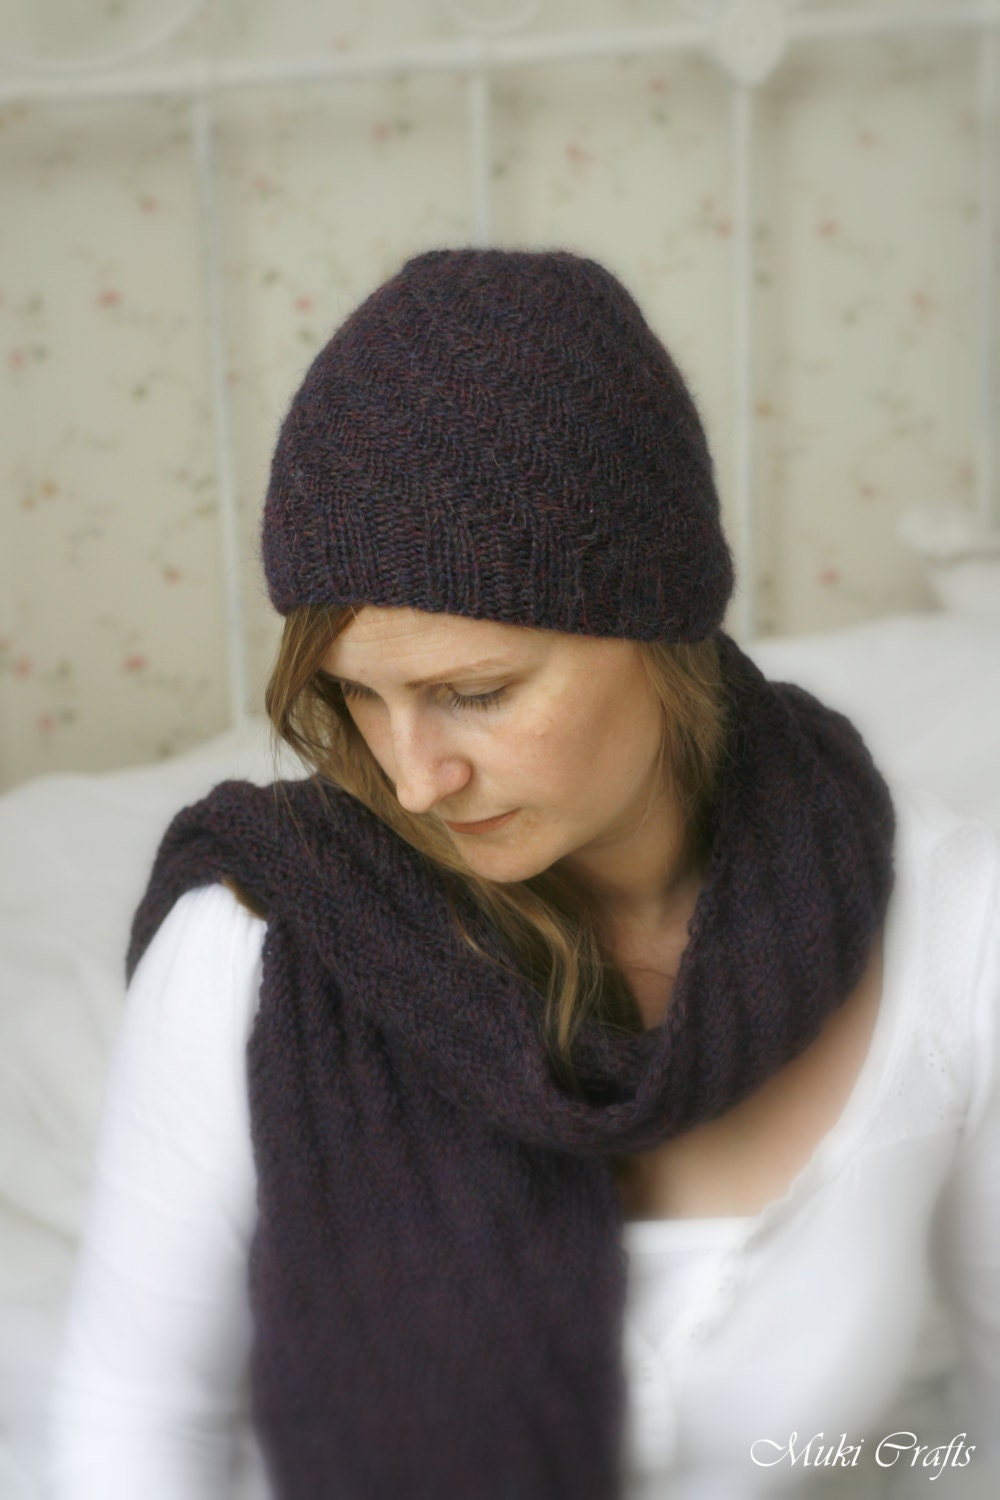 Knitting Pattern For Scarf And Beanie : KNITTING PATTERN beanie hat Ashton and scarf child by MukiCrafts